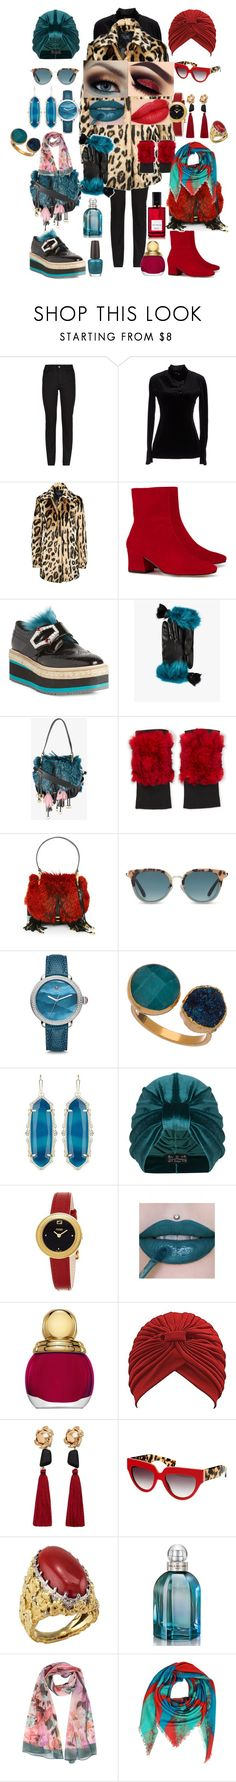 """#48"" by fashionablysharon ❤ liked on Polyvore featuring Armani Jeans, Emporio Armani, Dorateymur, Prada, Annabelle, TOMS, Michele, Janna Conner Designs, Kendra Scott and The Future Heirlooms Boutique"